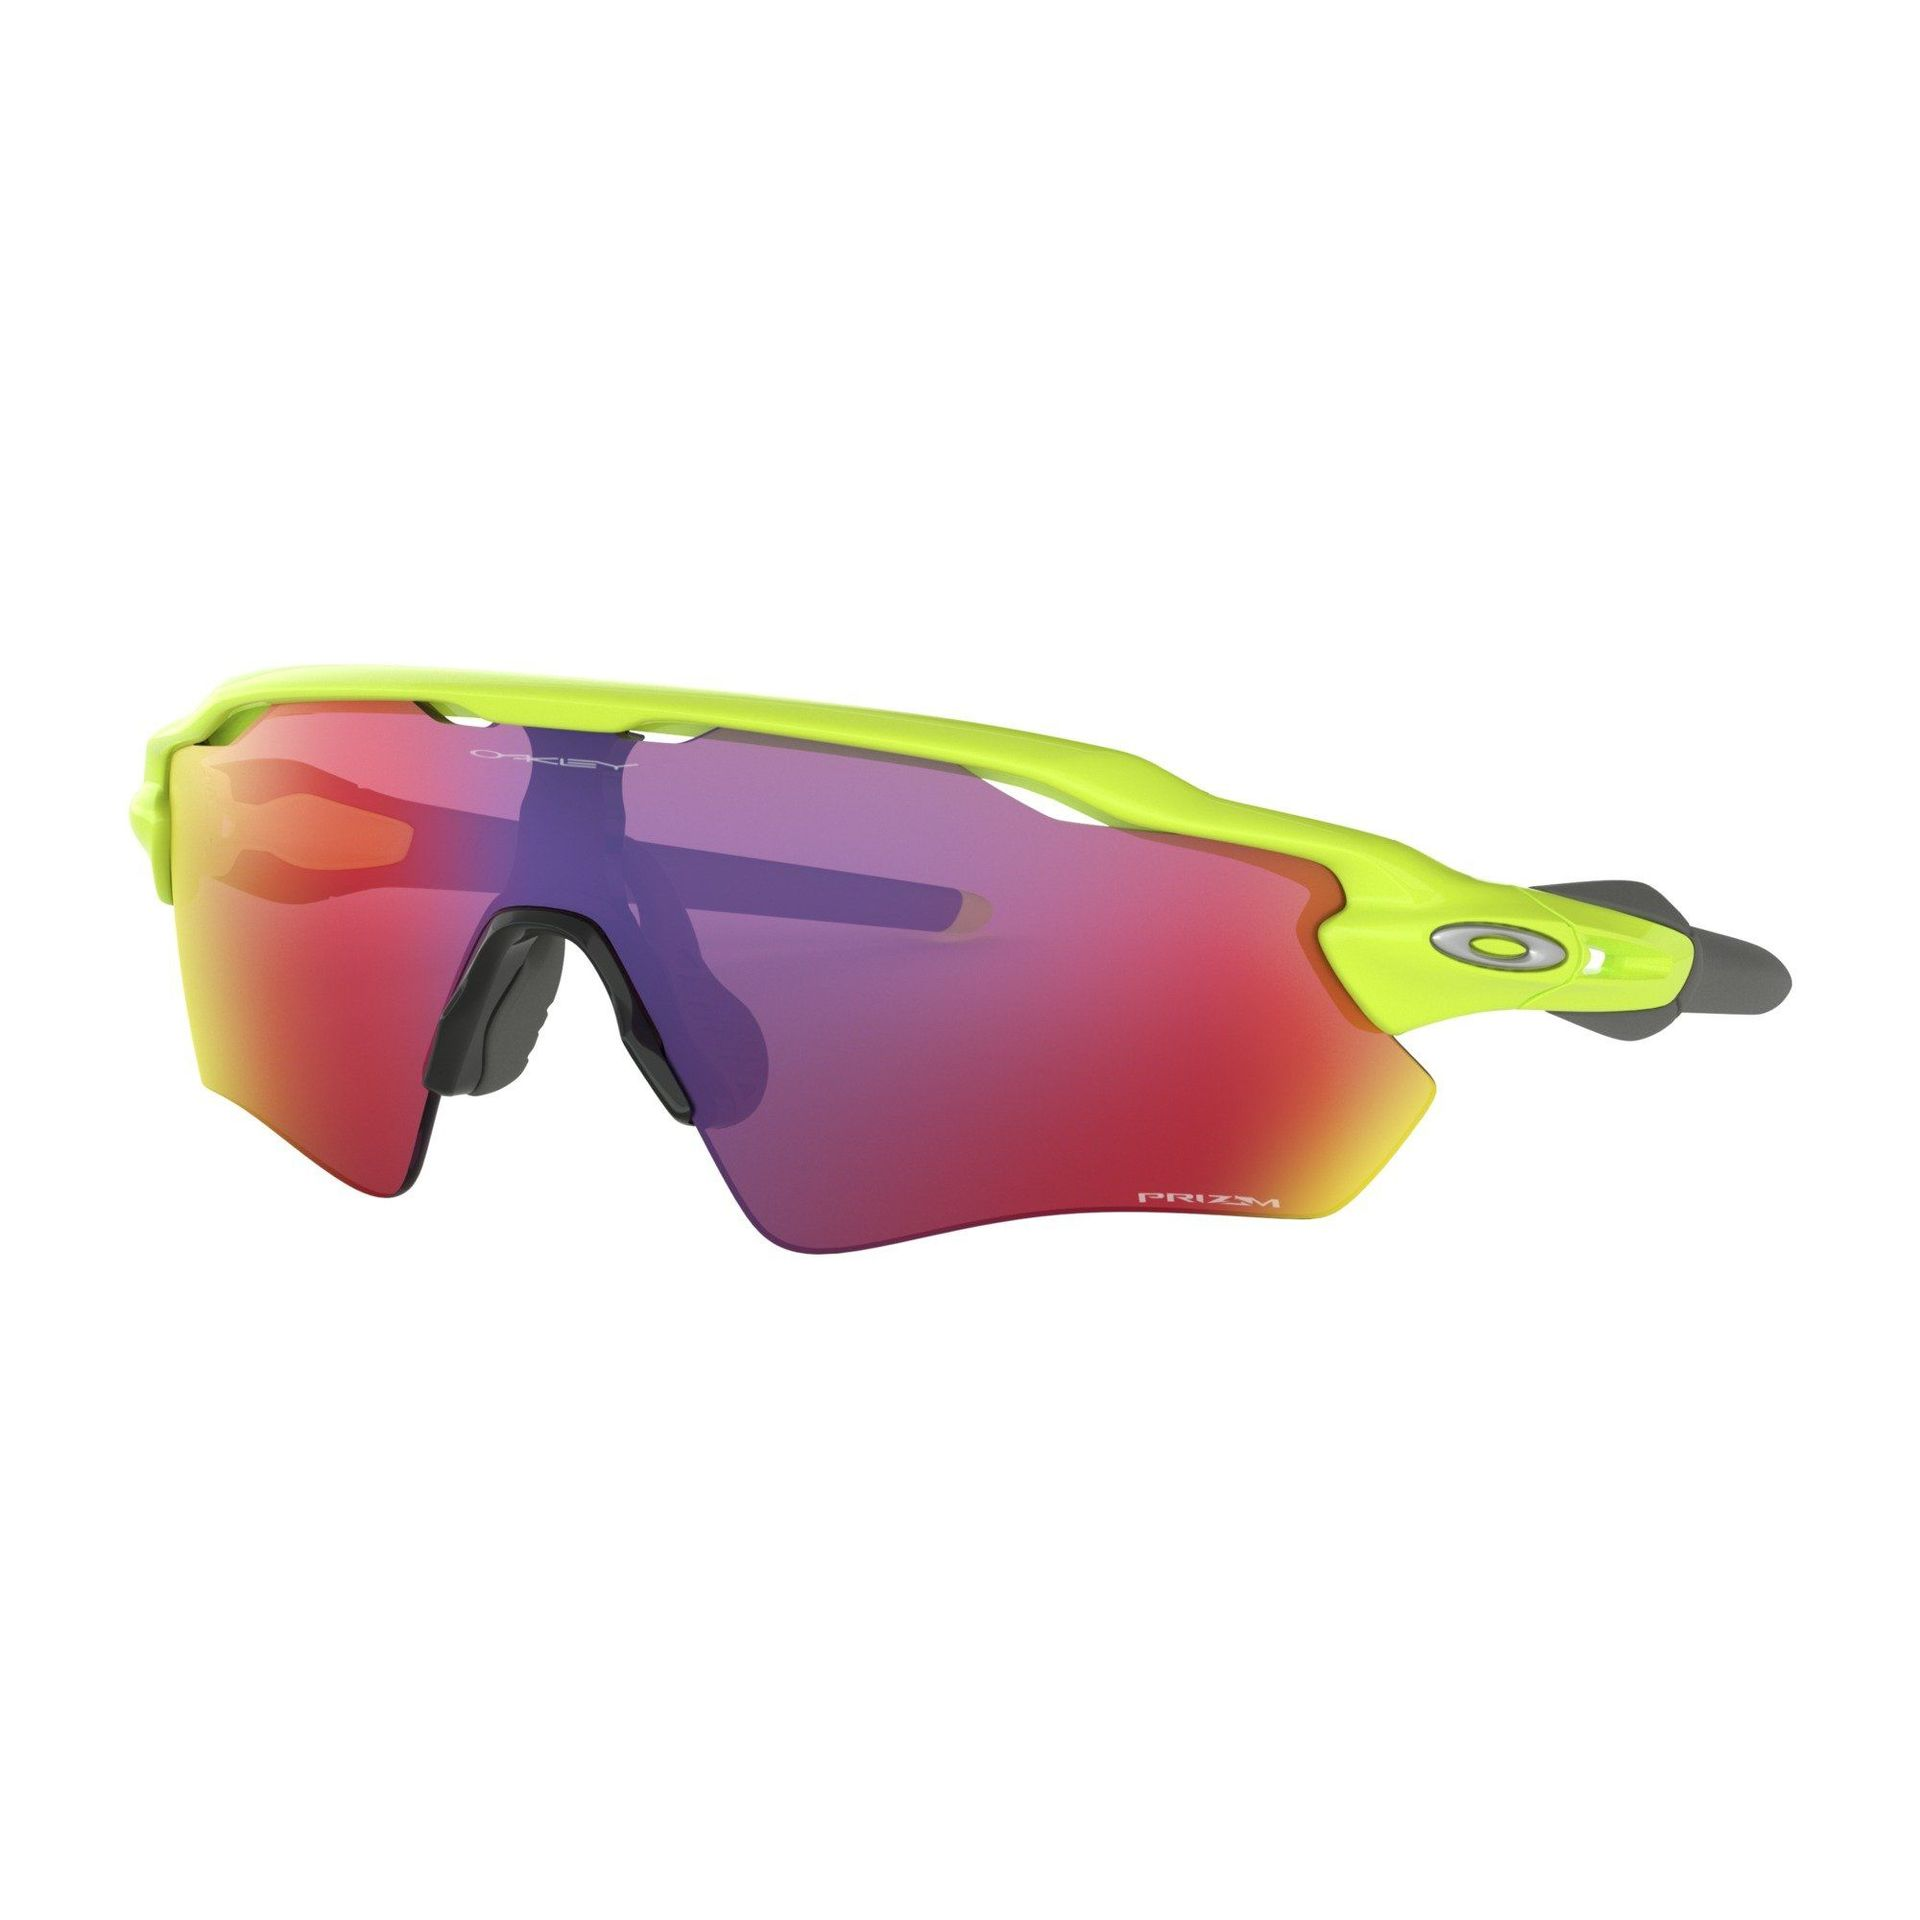 OKULARY OAKLEY RADAR EV PATH RETINA BURN|PRIZM ROAD 1